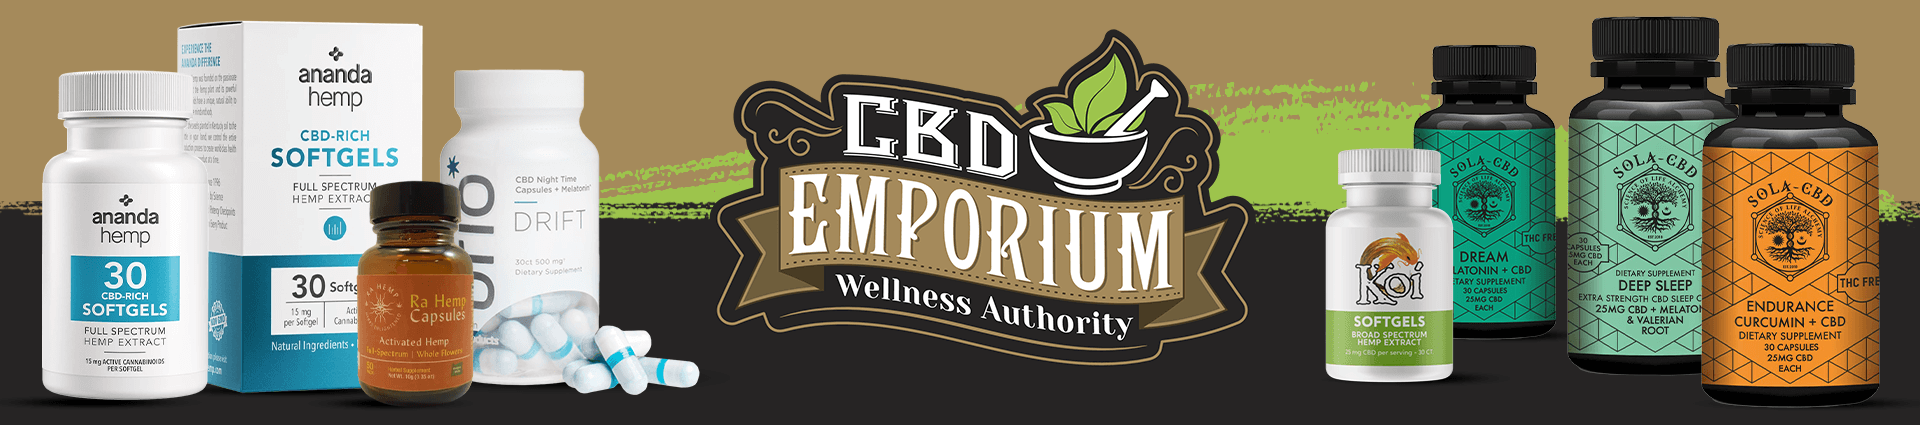 CBD Capsules products at CBD Emporium